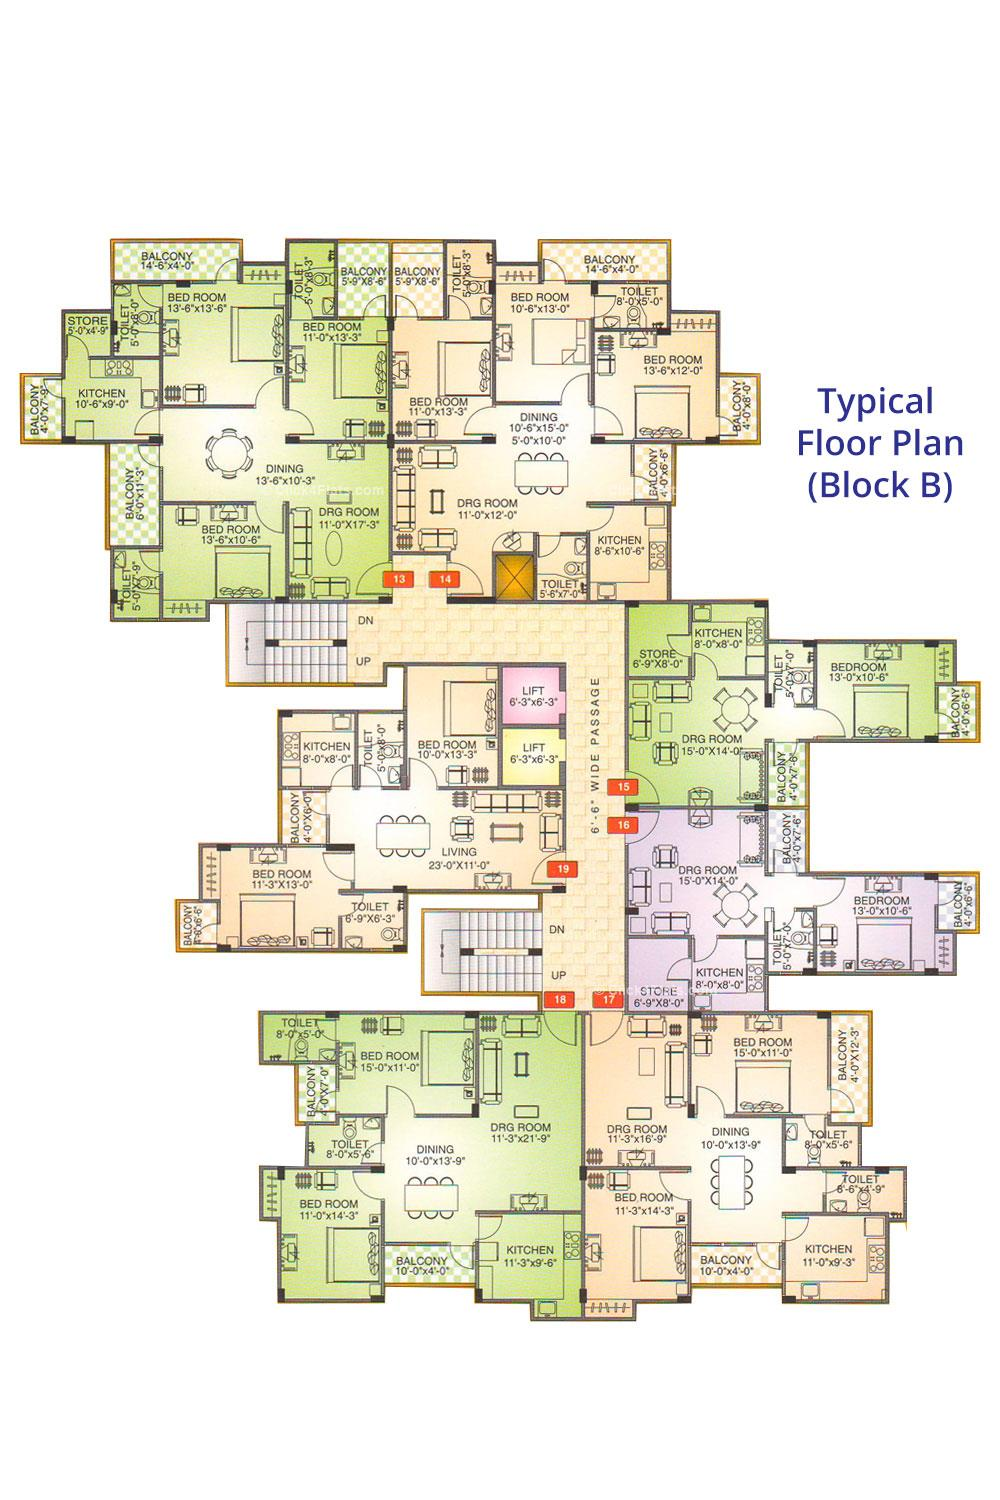 Shivgyan Enclave Typical Floor Plan (Block C)